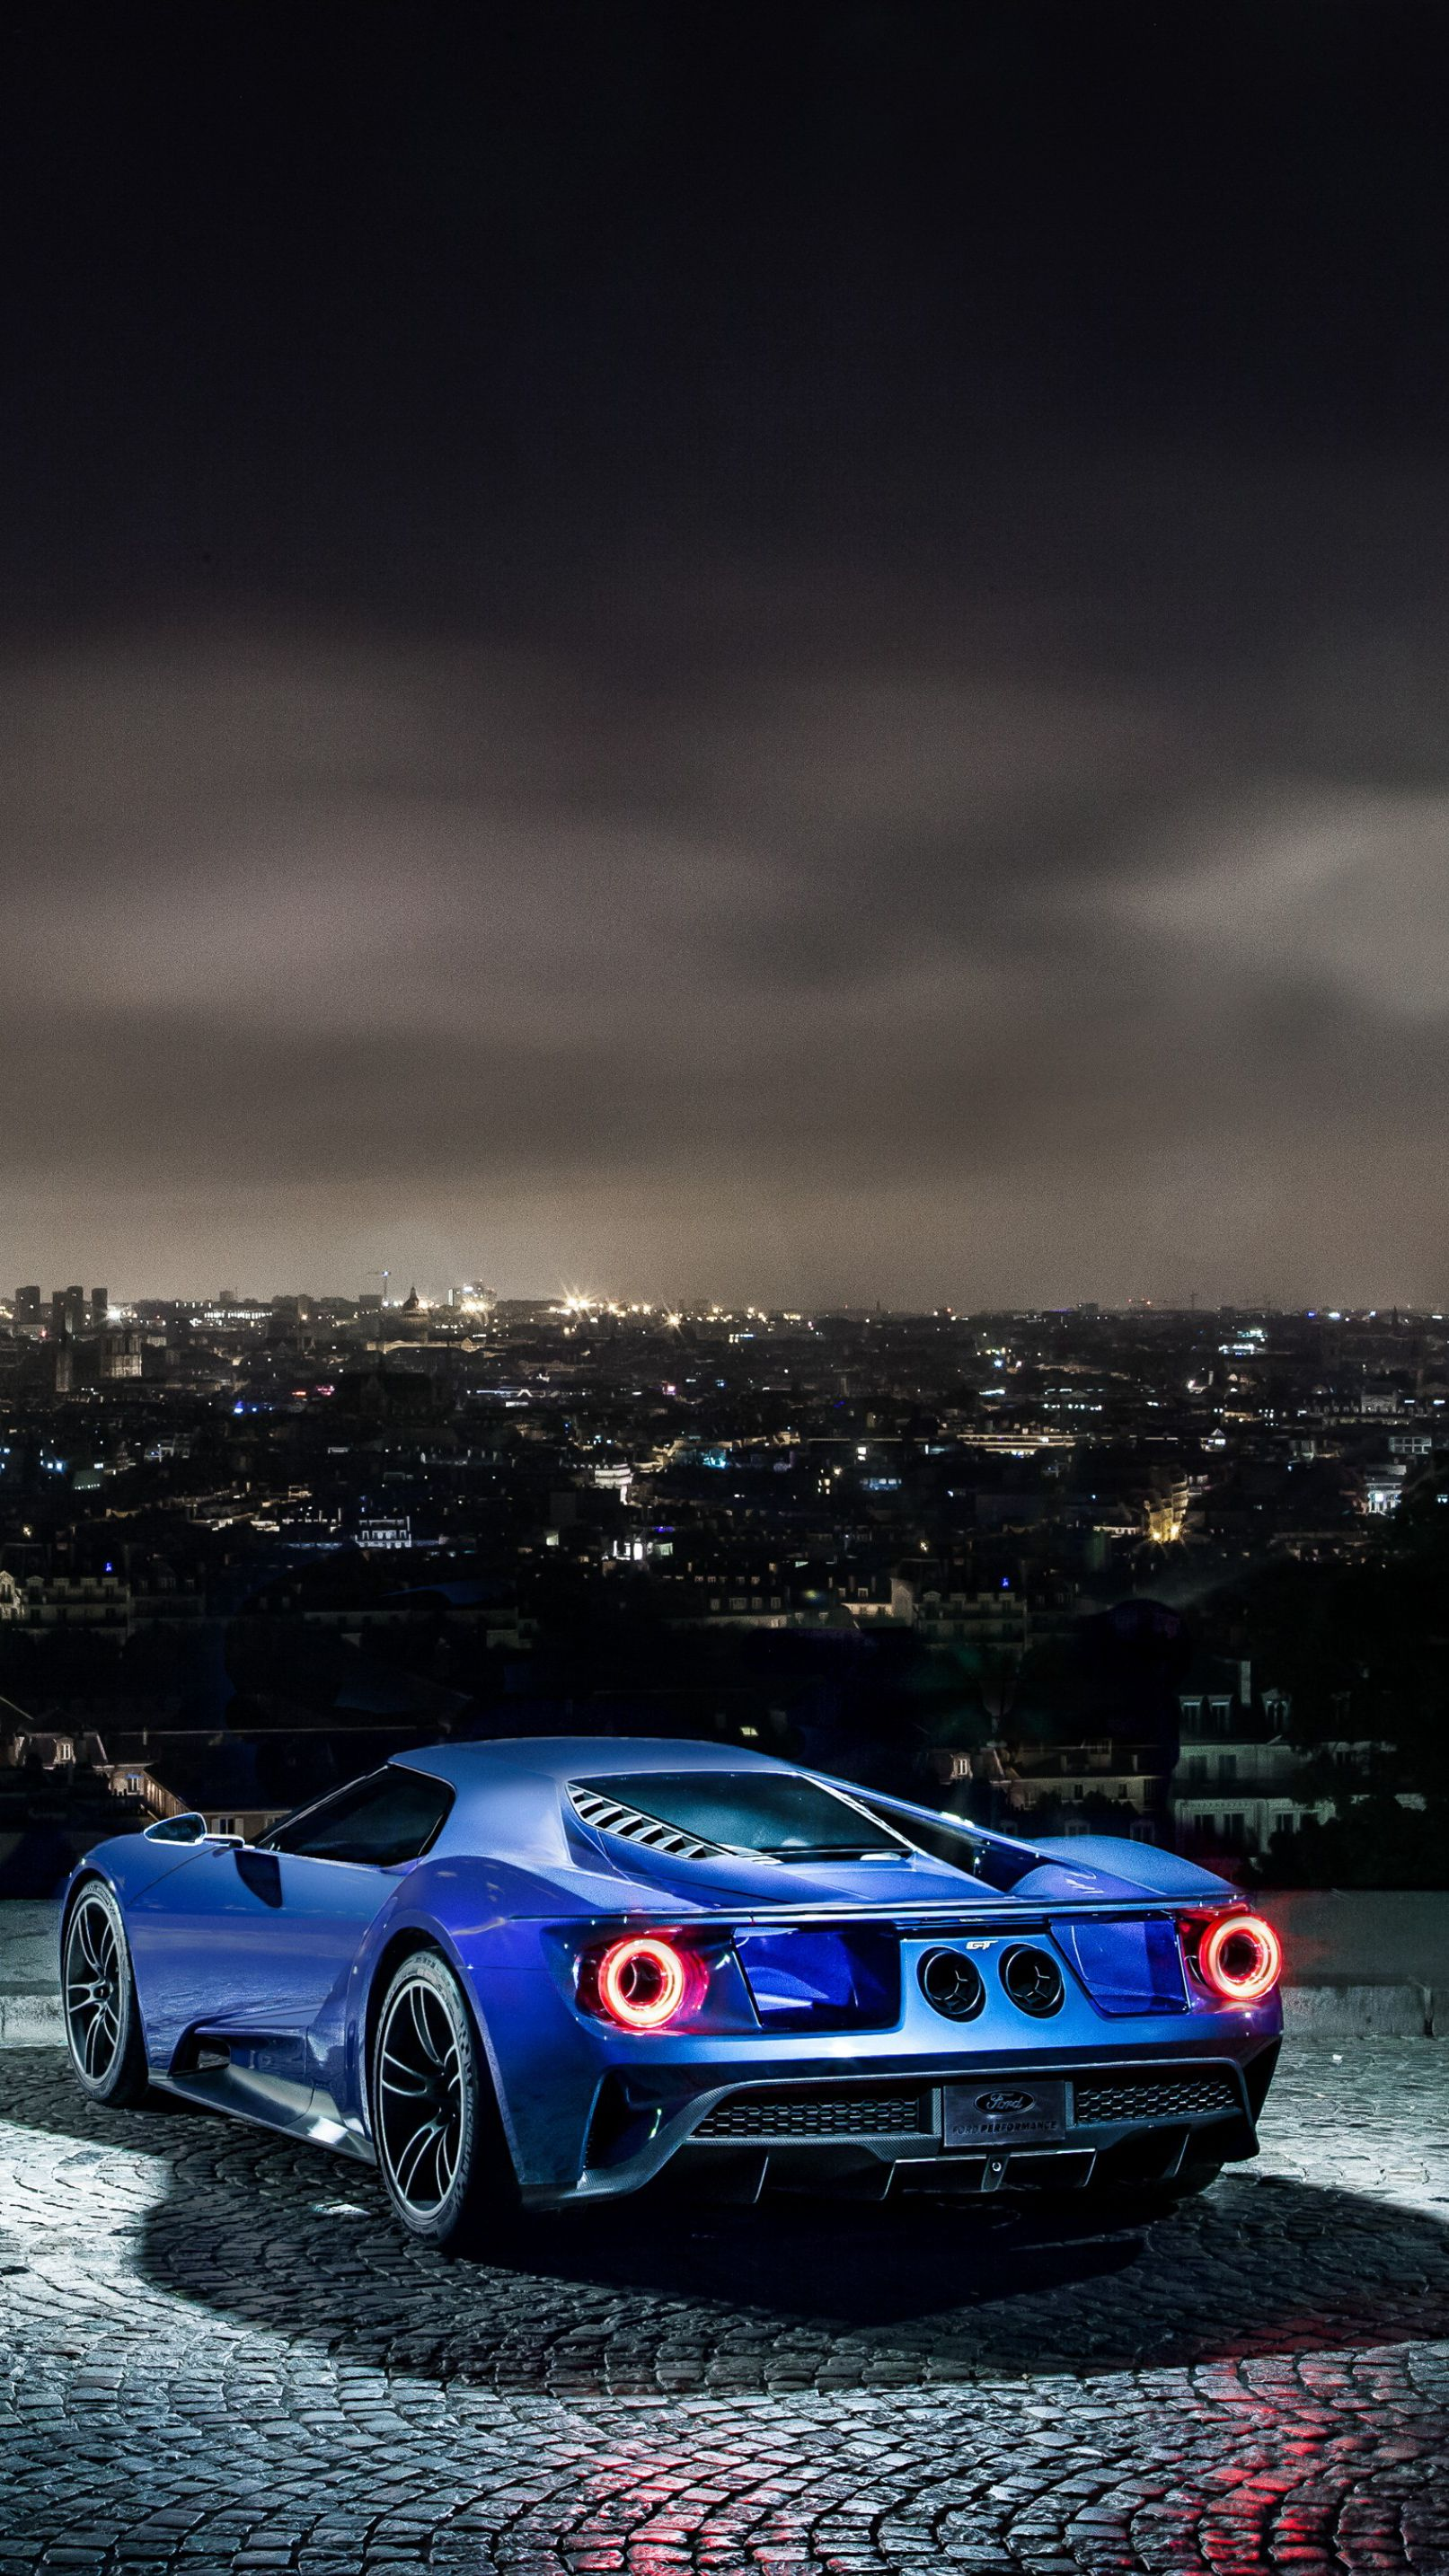 Ford Gt Car Mobile Hd Wallpaper Ford Gt Sports Car Wallpaper Sports Car